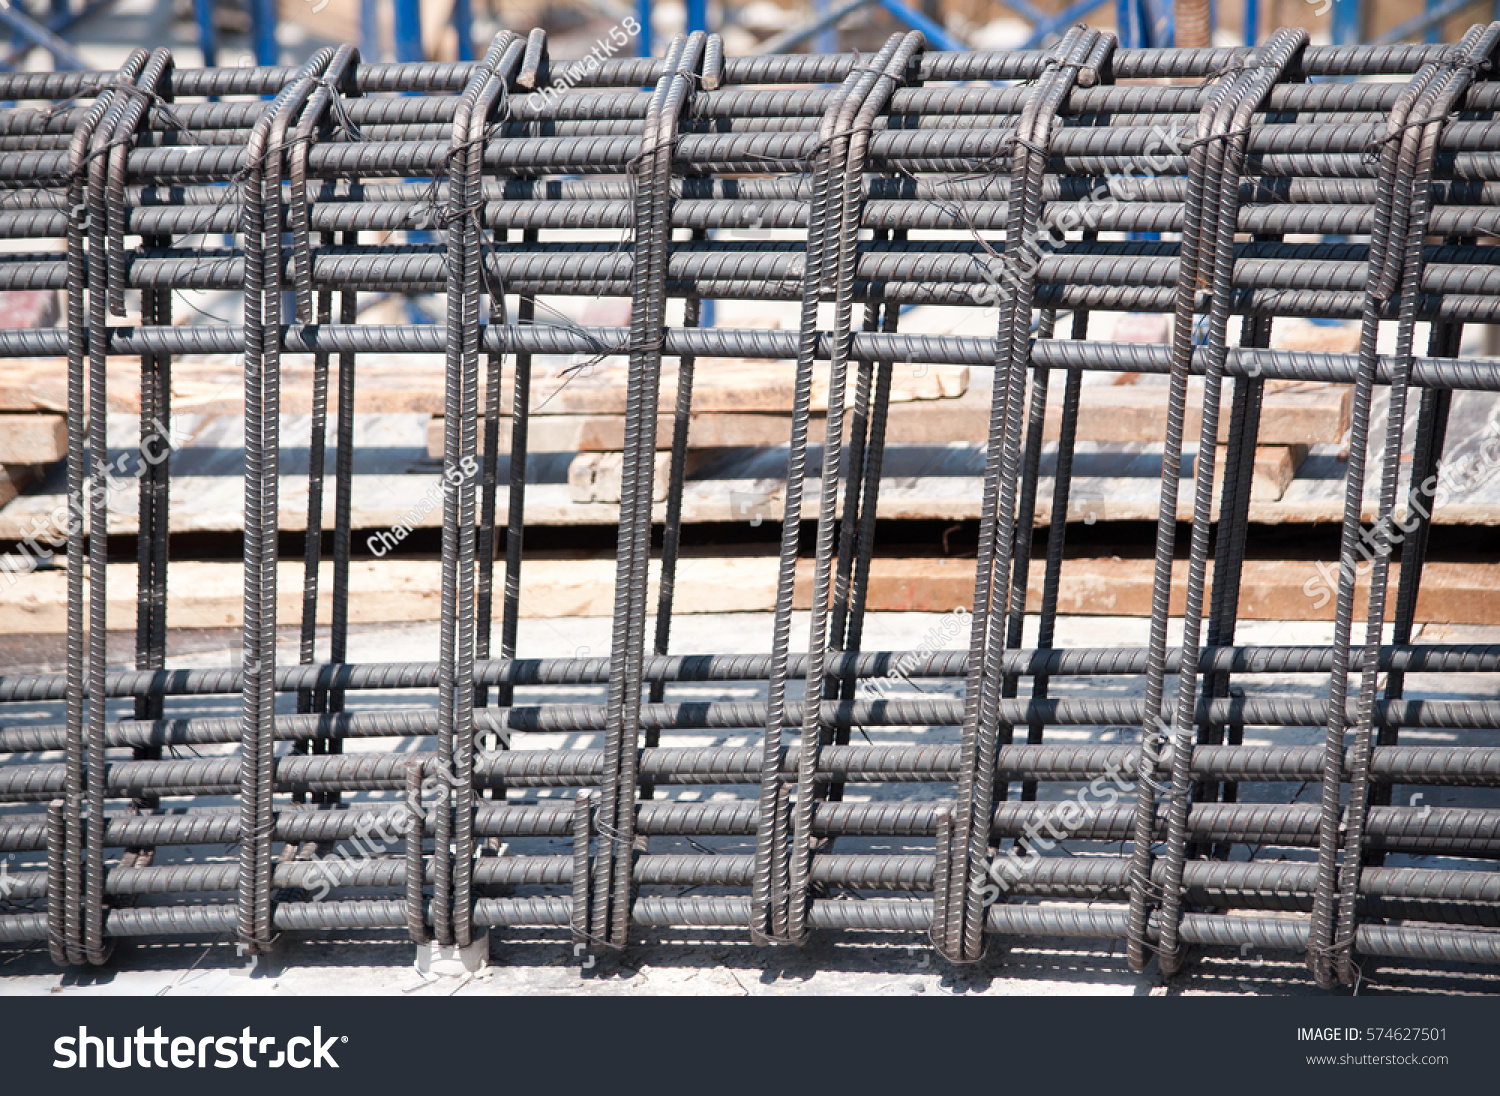 Using Steel Wire Securing Steel Bars Stock Photo (Royalty Free ...